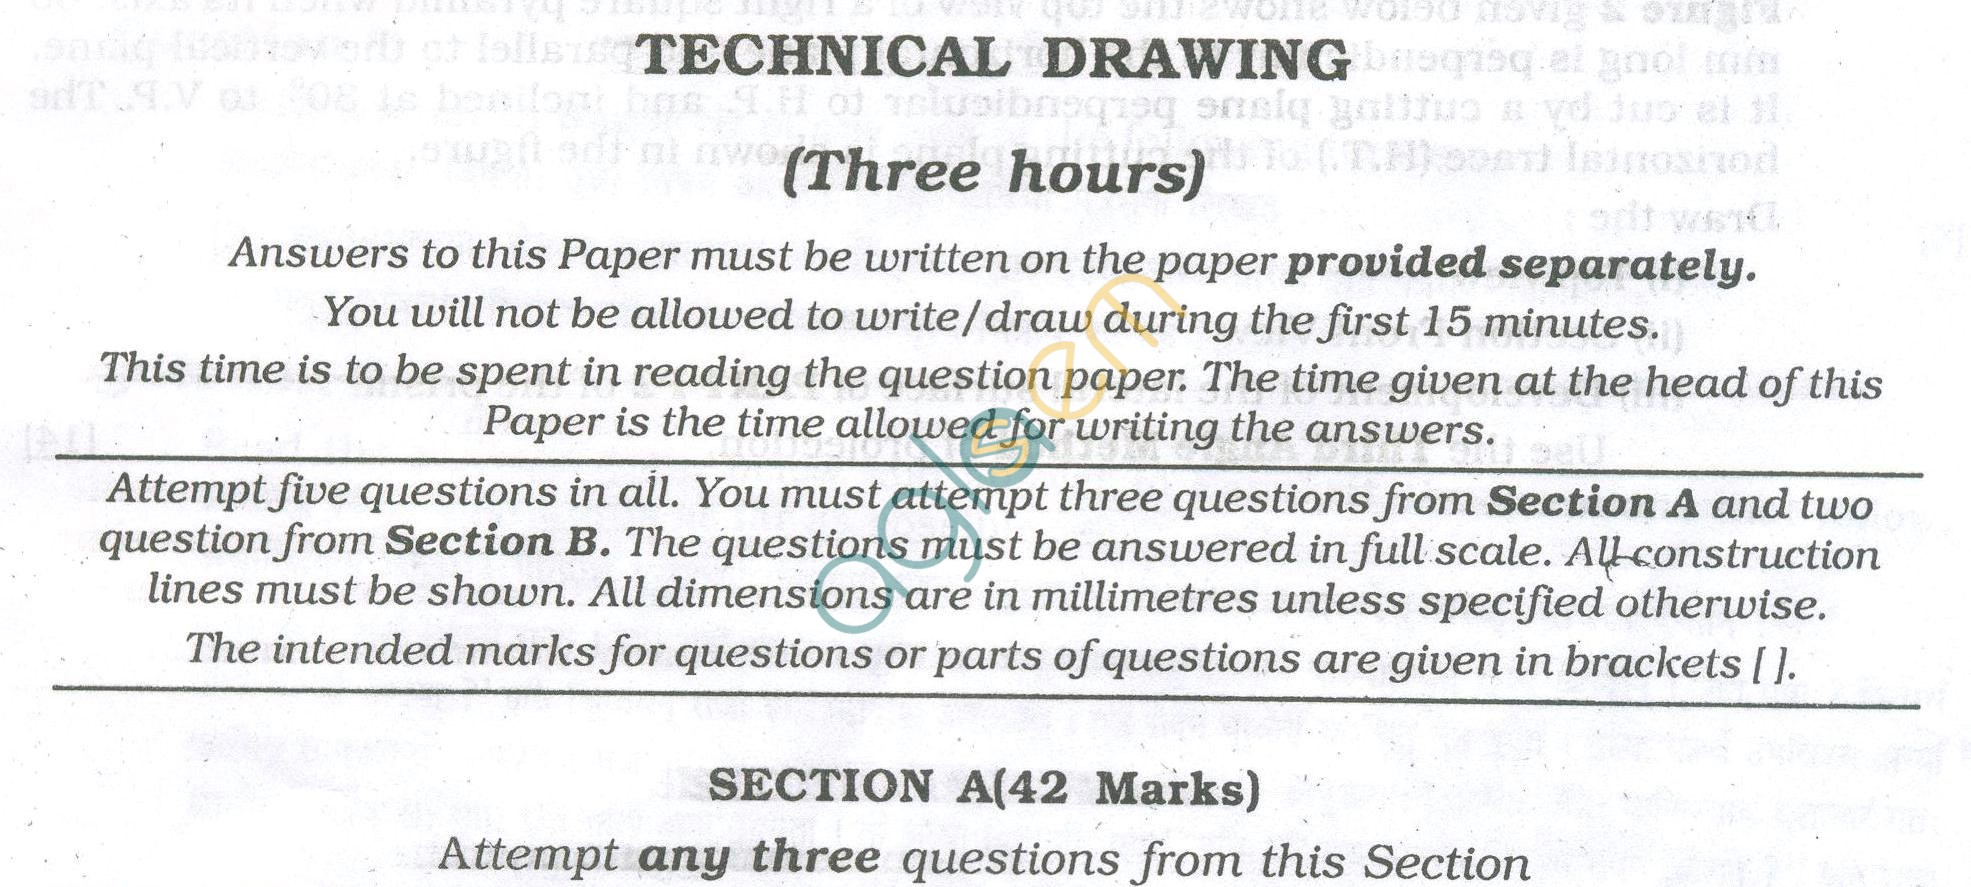 ICSE Question Papers 2013 for Class 10 - Technical Drawing